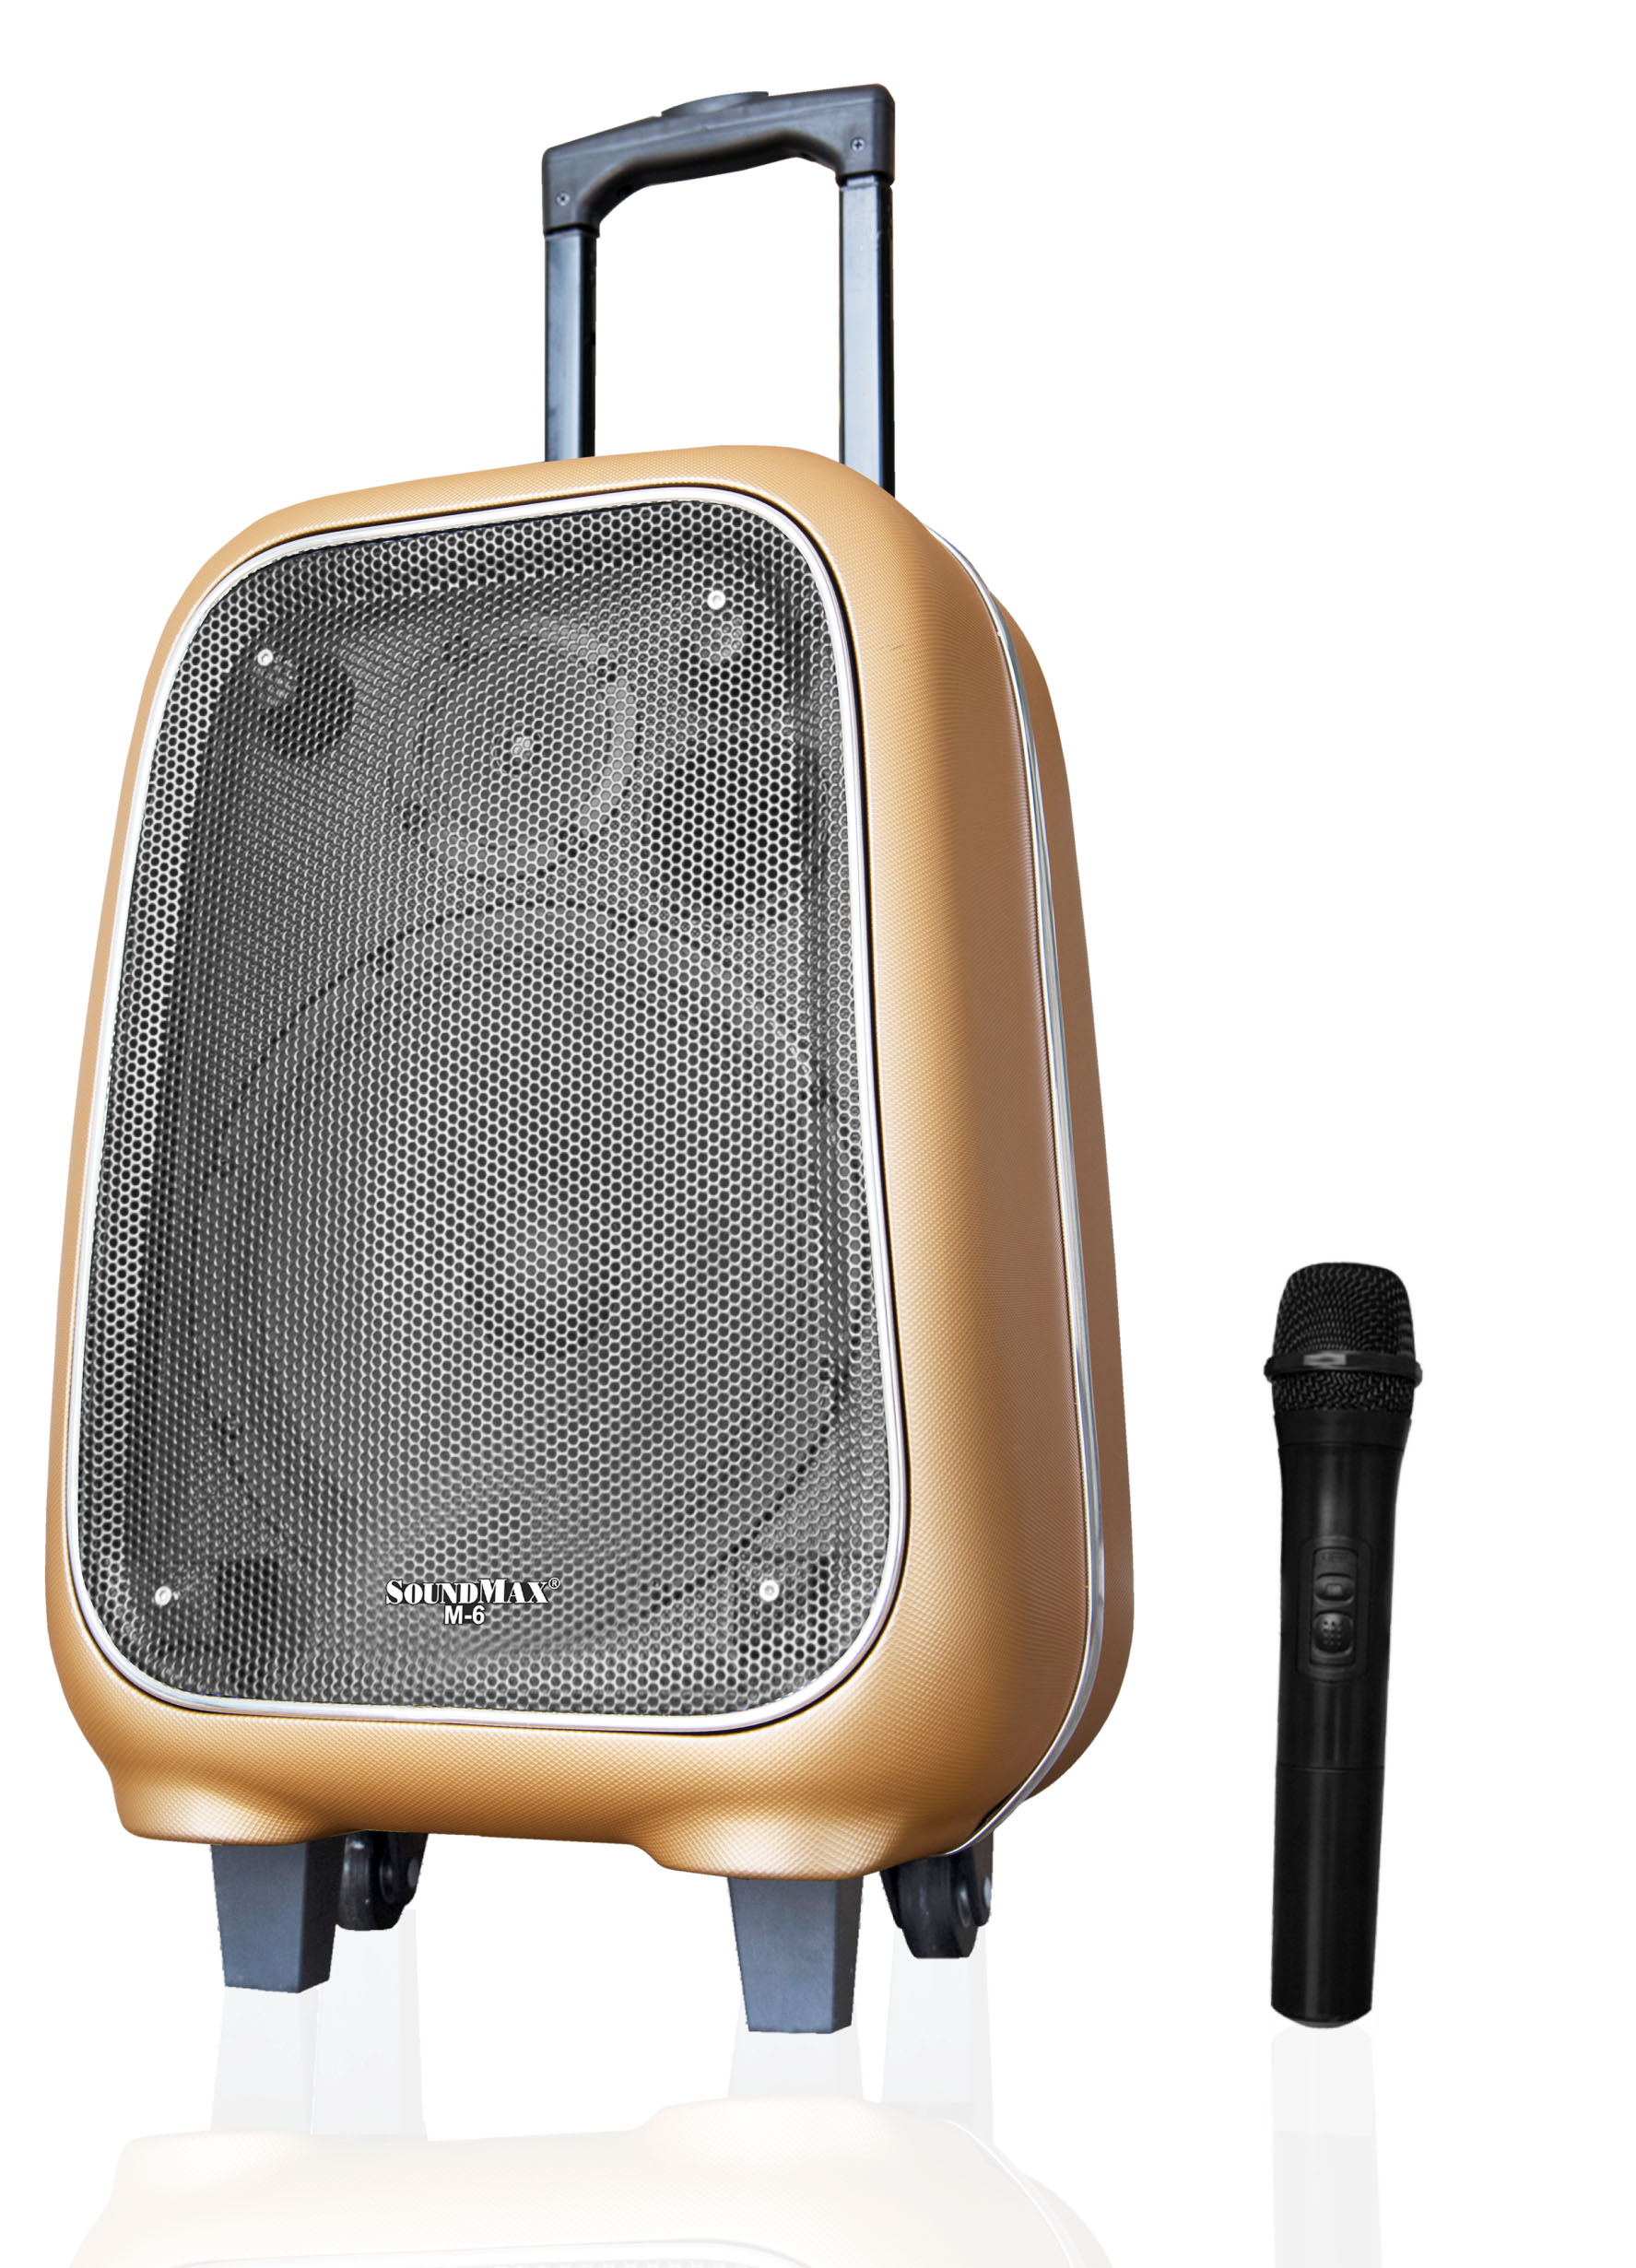 Loa SoundMax trợ giảng M6